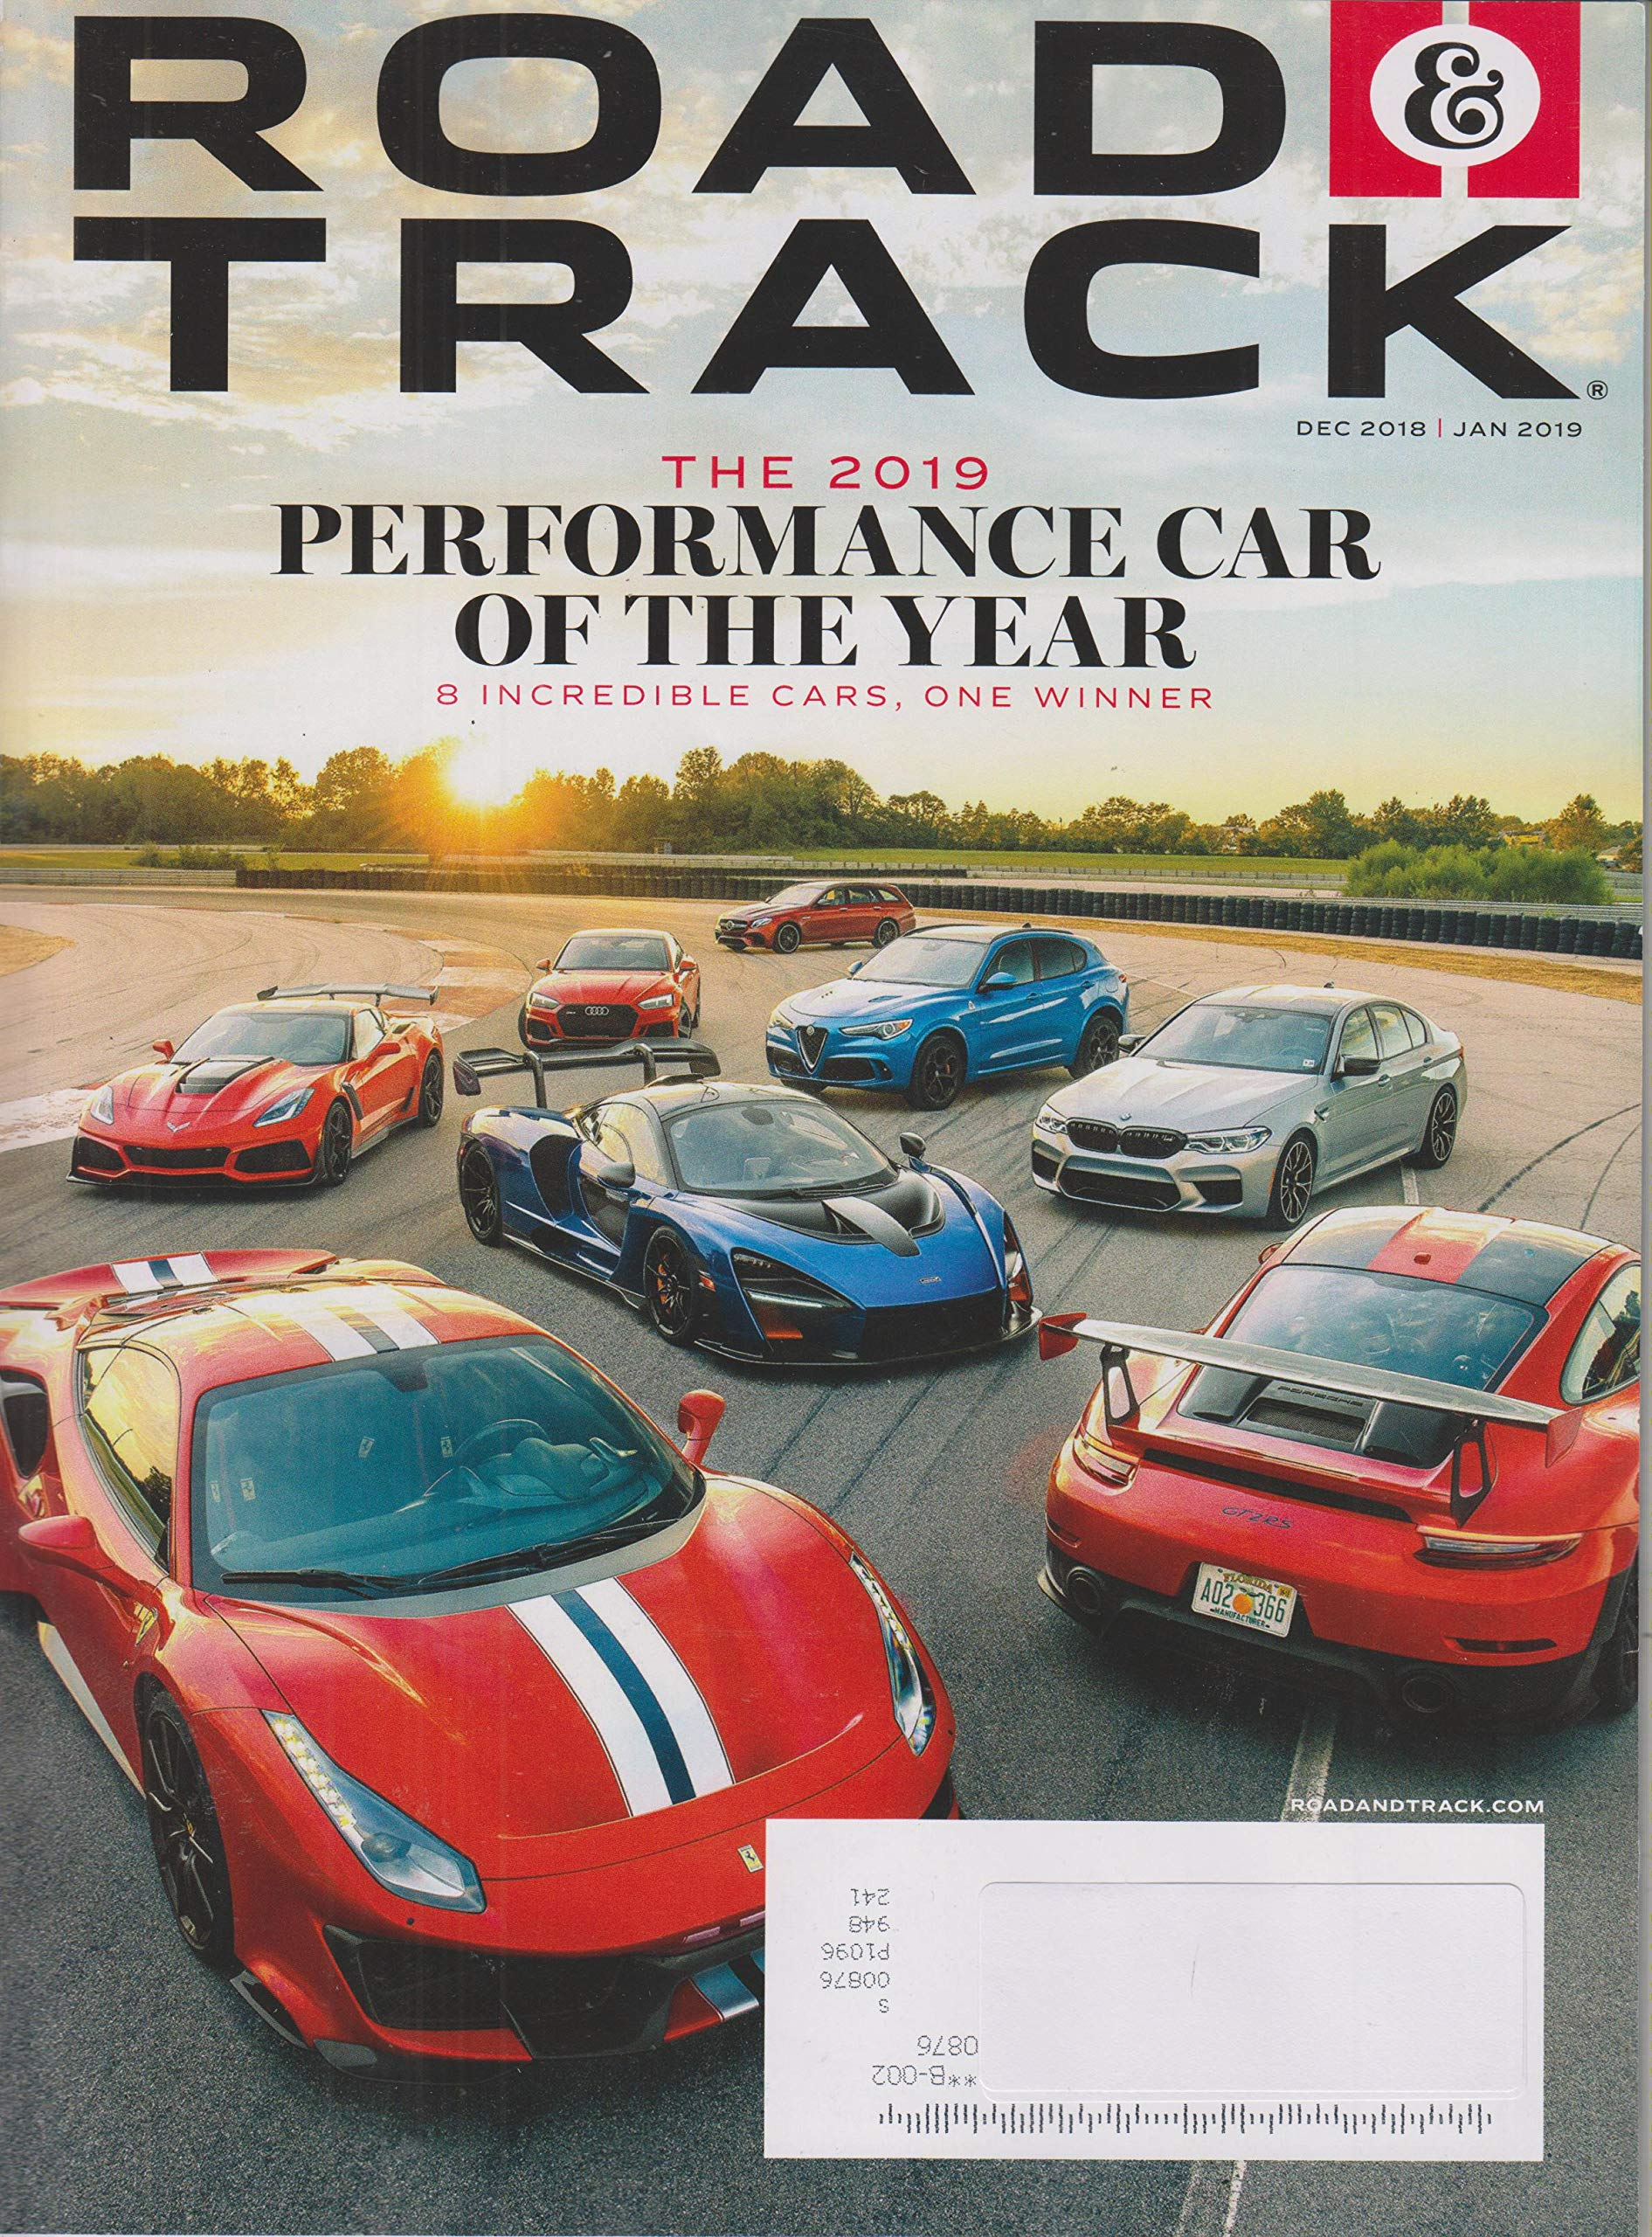 Pay Roadandtrack Com >> Road Track December 2018 January 2019 The 2019 Performance Car Of